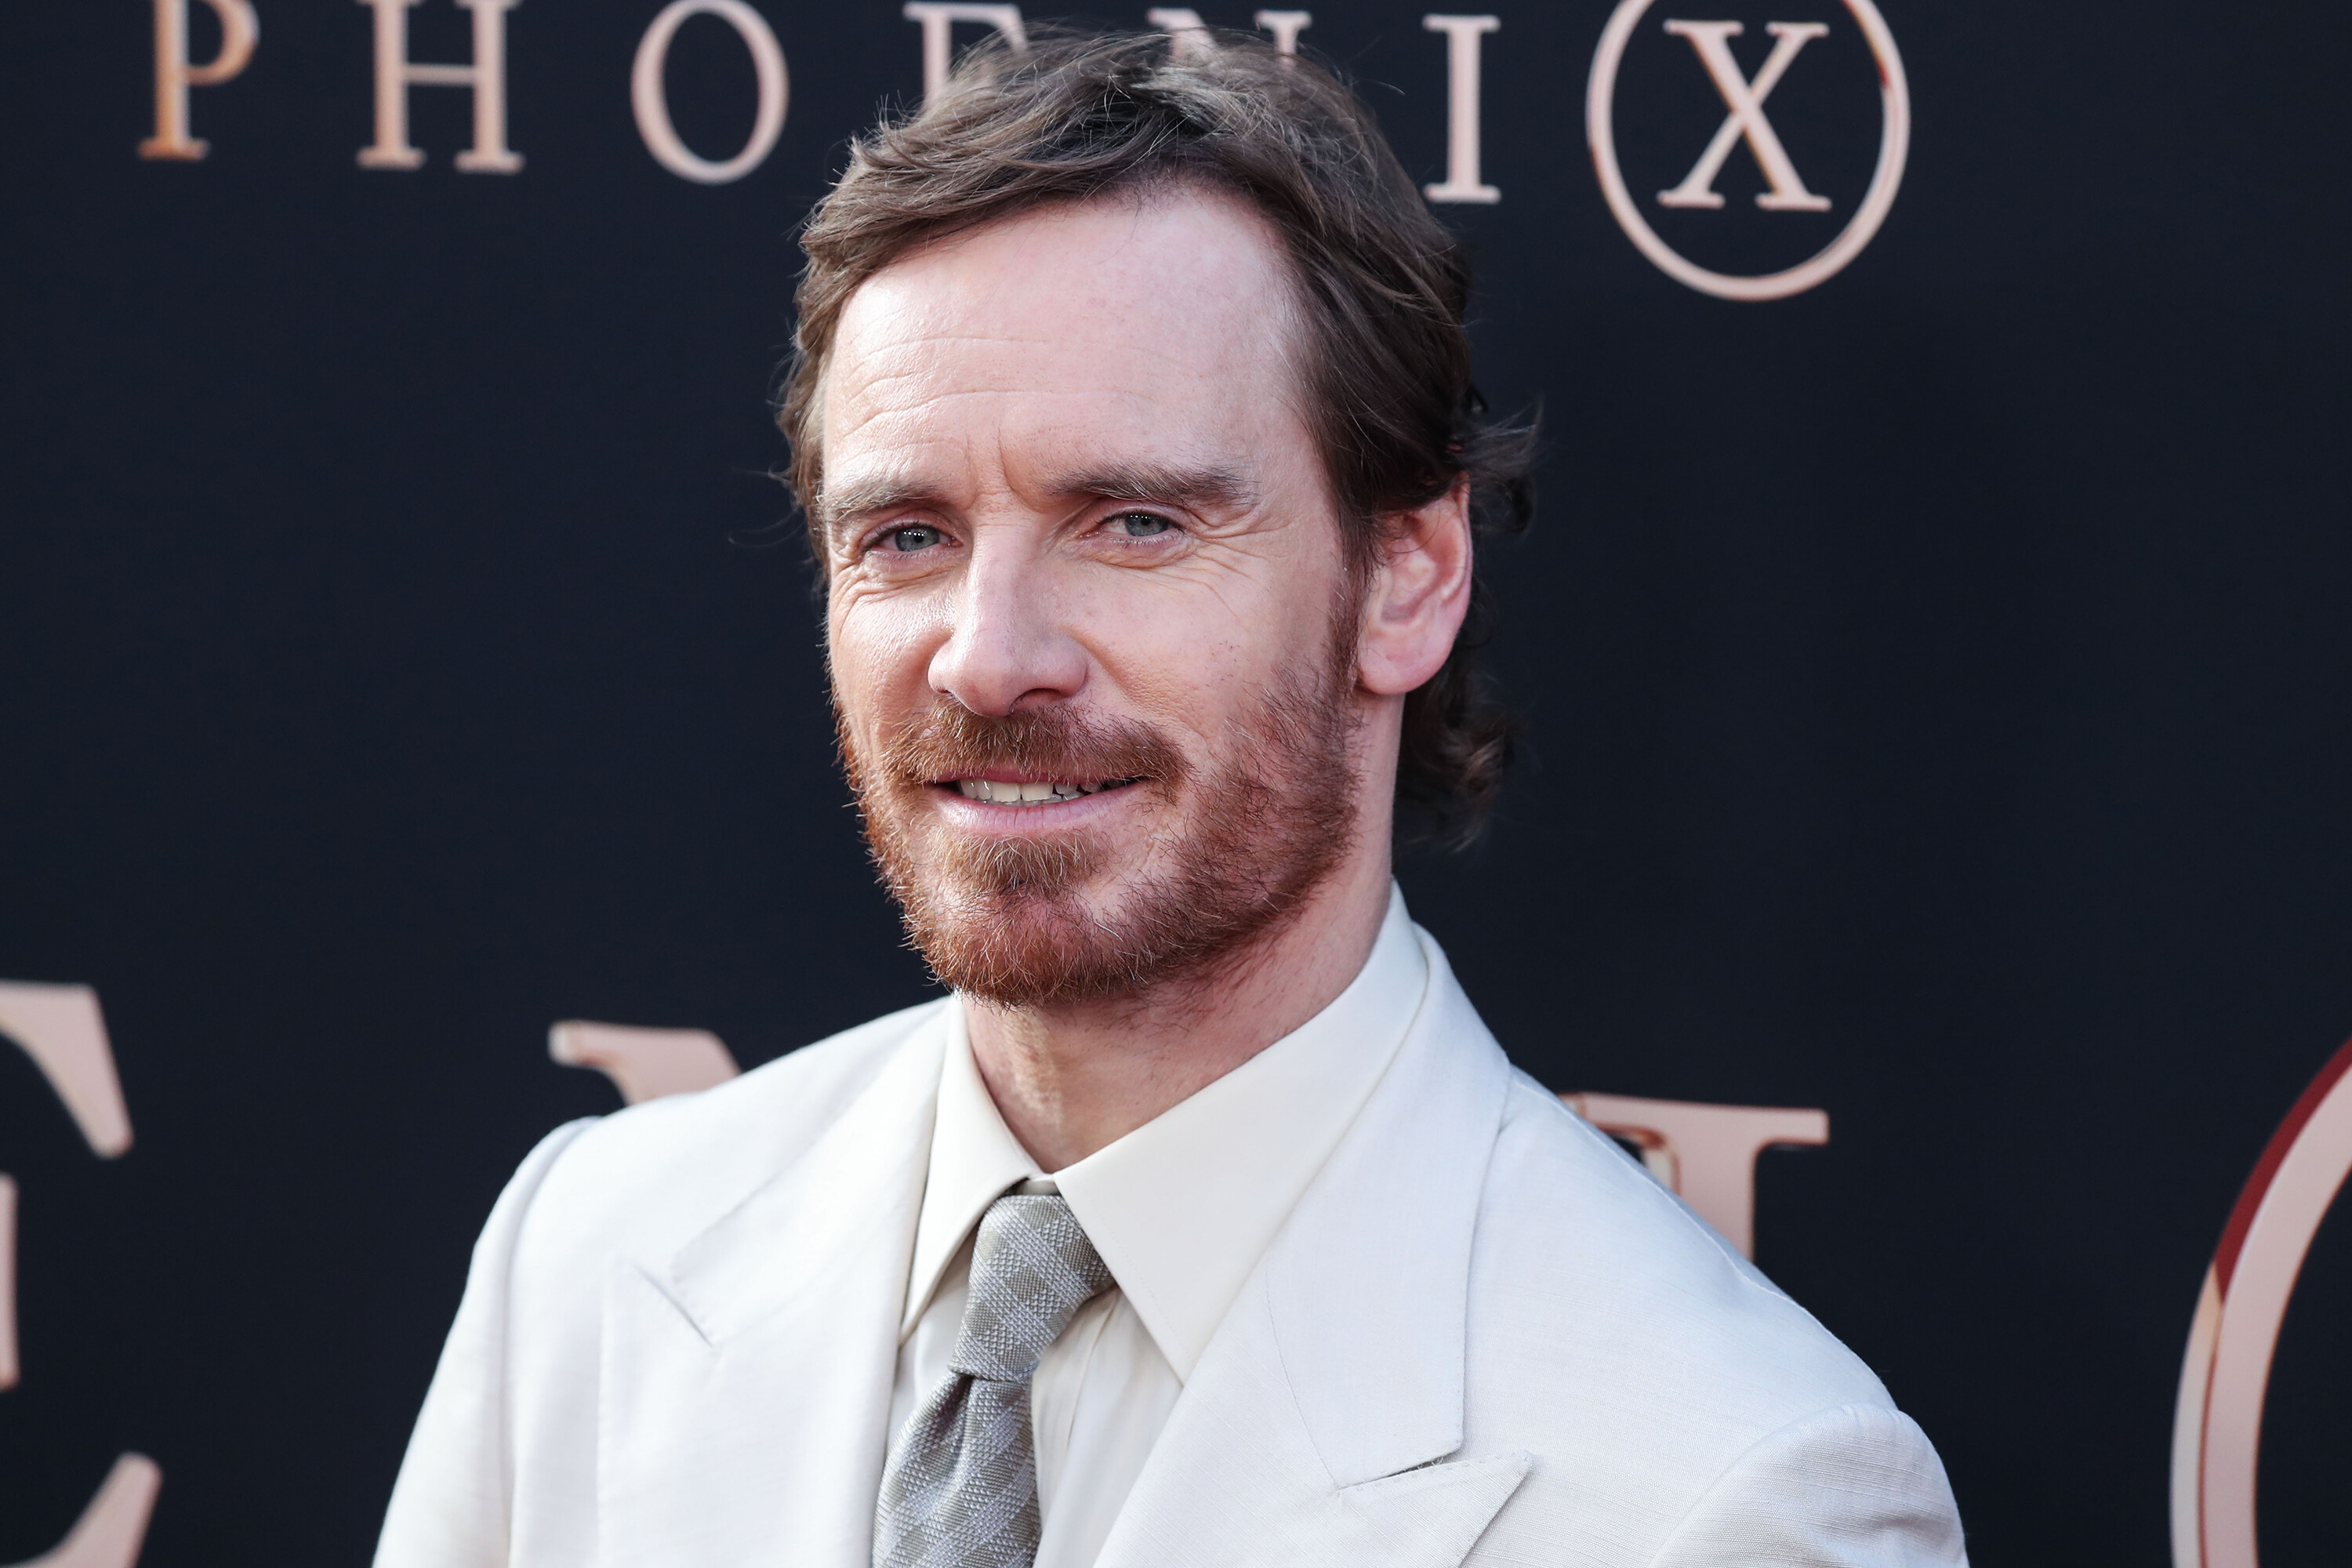 Michael Fassbender surprises students at his old high school with acting class